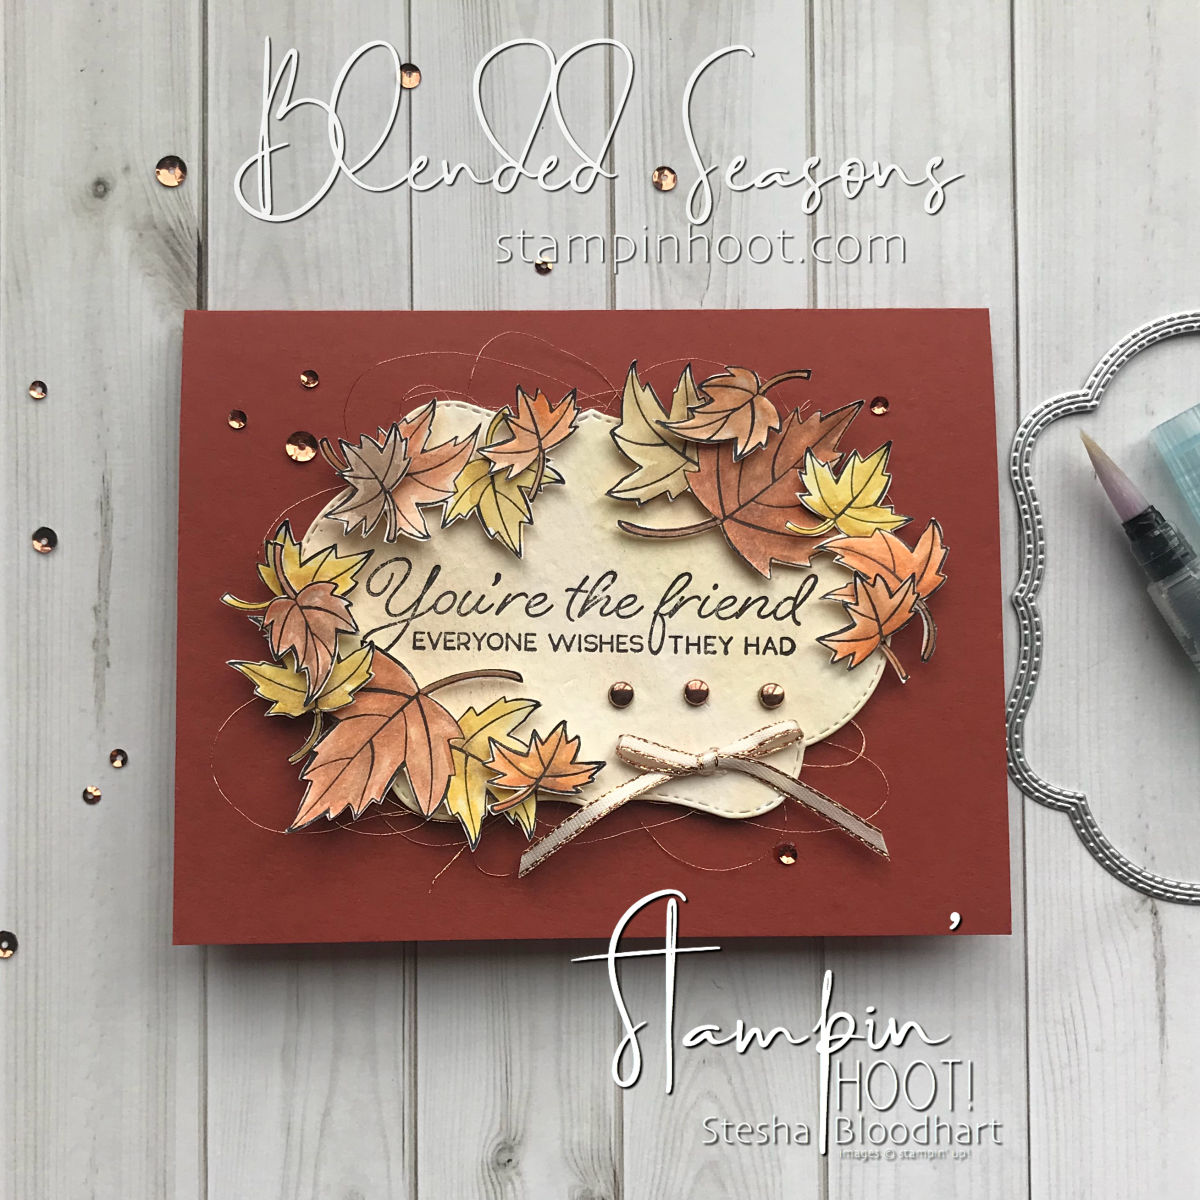 Blended Seasons Friend Card Leaves and Watercolor Pencils by Stesha Bloodhart, Stampin' Hoot! #steshabloodhart #stampinhoot #blendedseasons